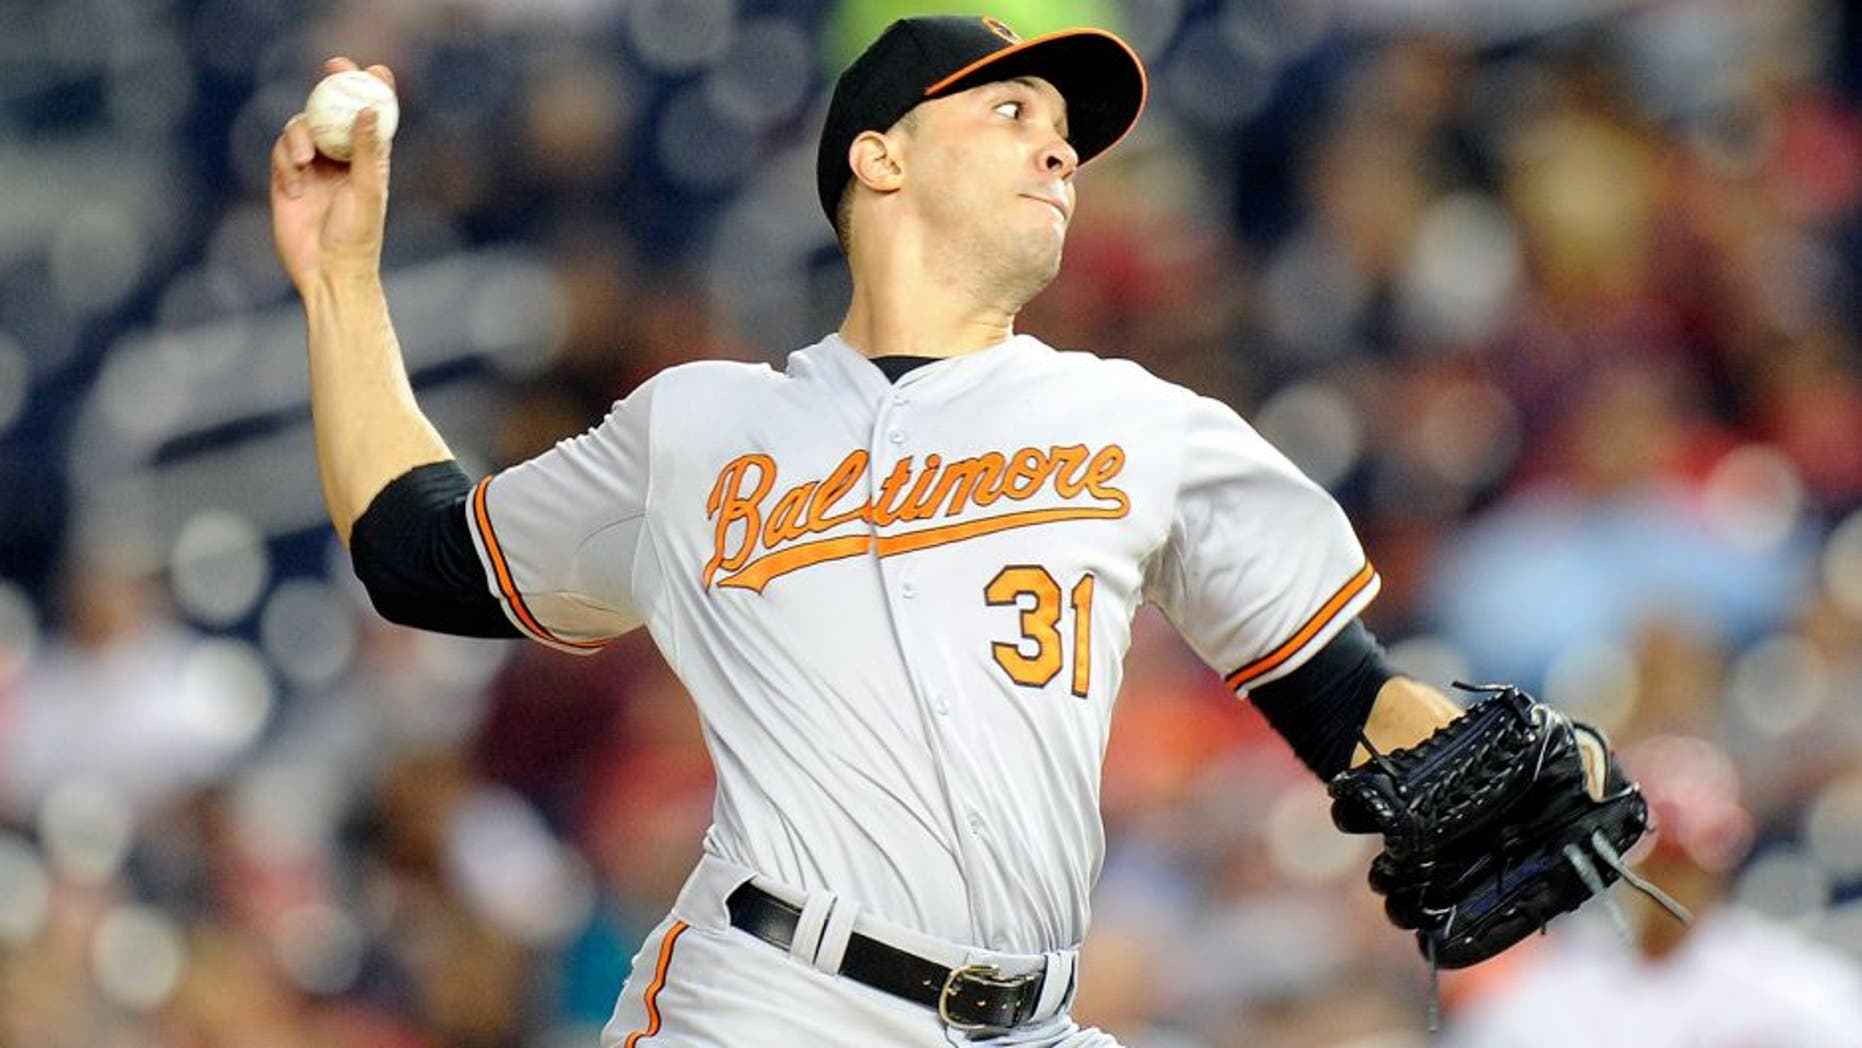 WASHINGTON, DC - SEPTEMBER 22: Ubaldo Jimenez #31 of the Baltimore Orioles pitches in the first inning against the Washington Nationals at Nationals Park on September 22, 2015 in Washington, DC. (Photo by Greg Fiume/Getty Images)